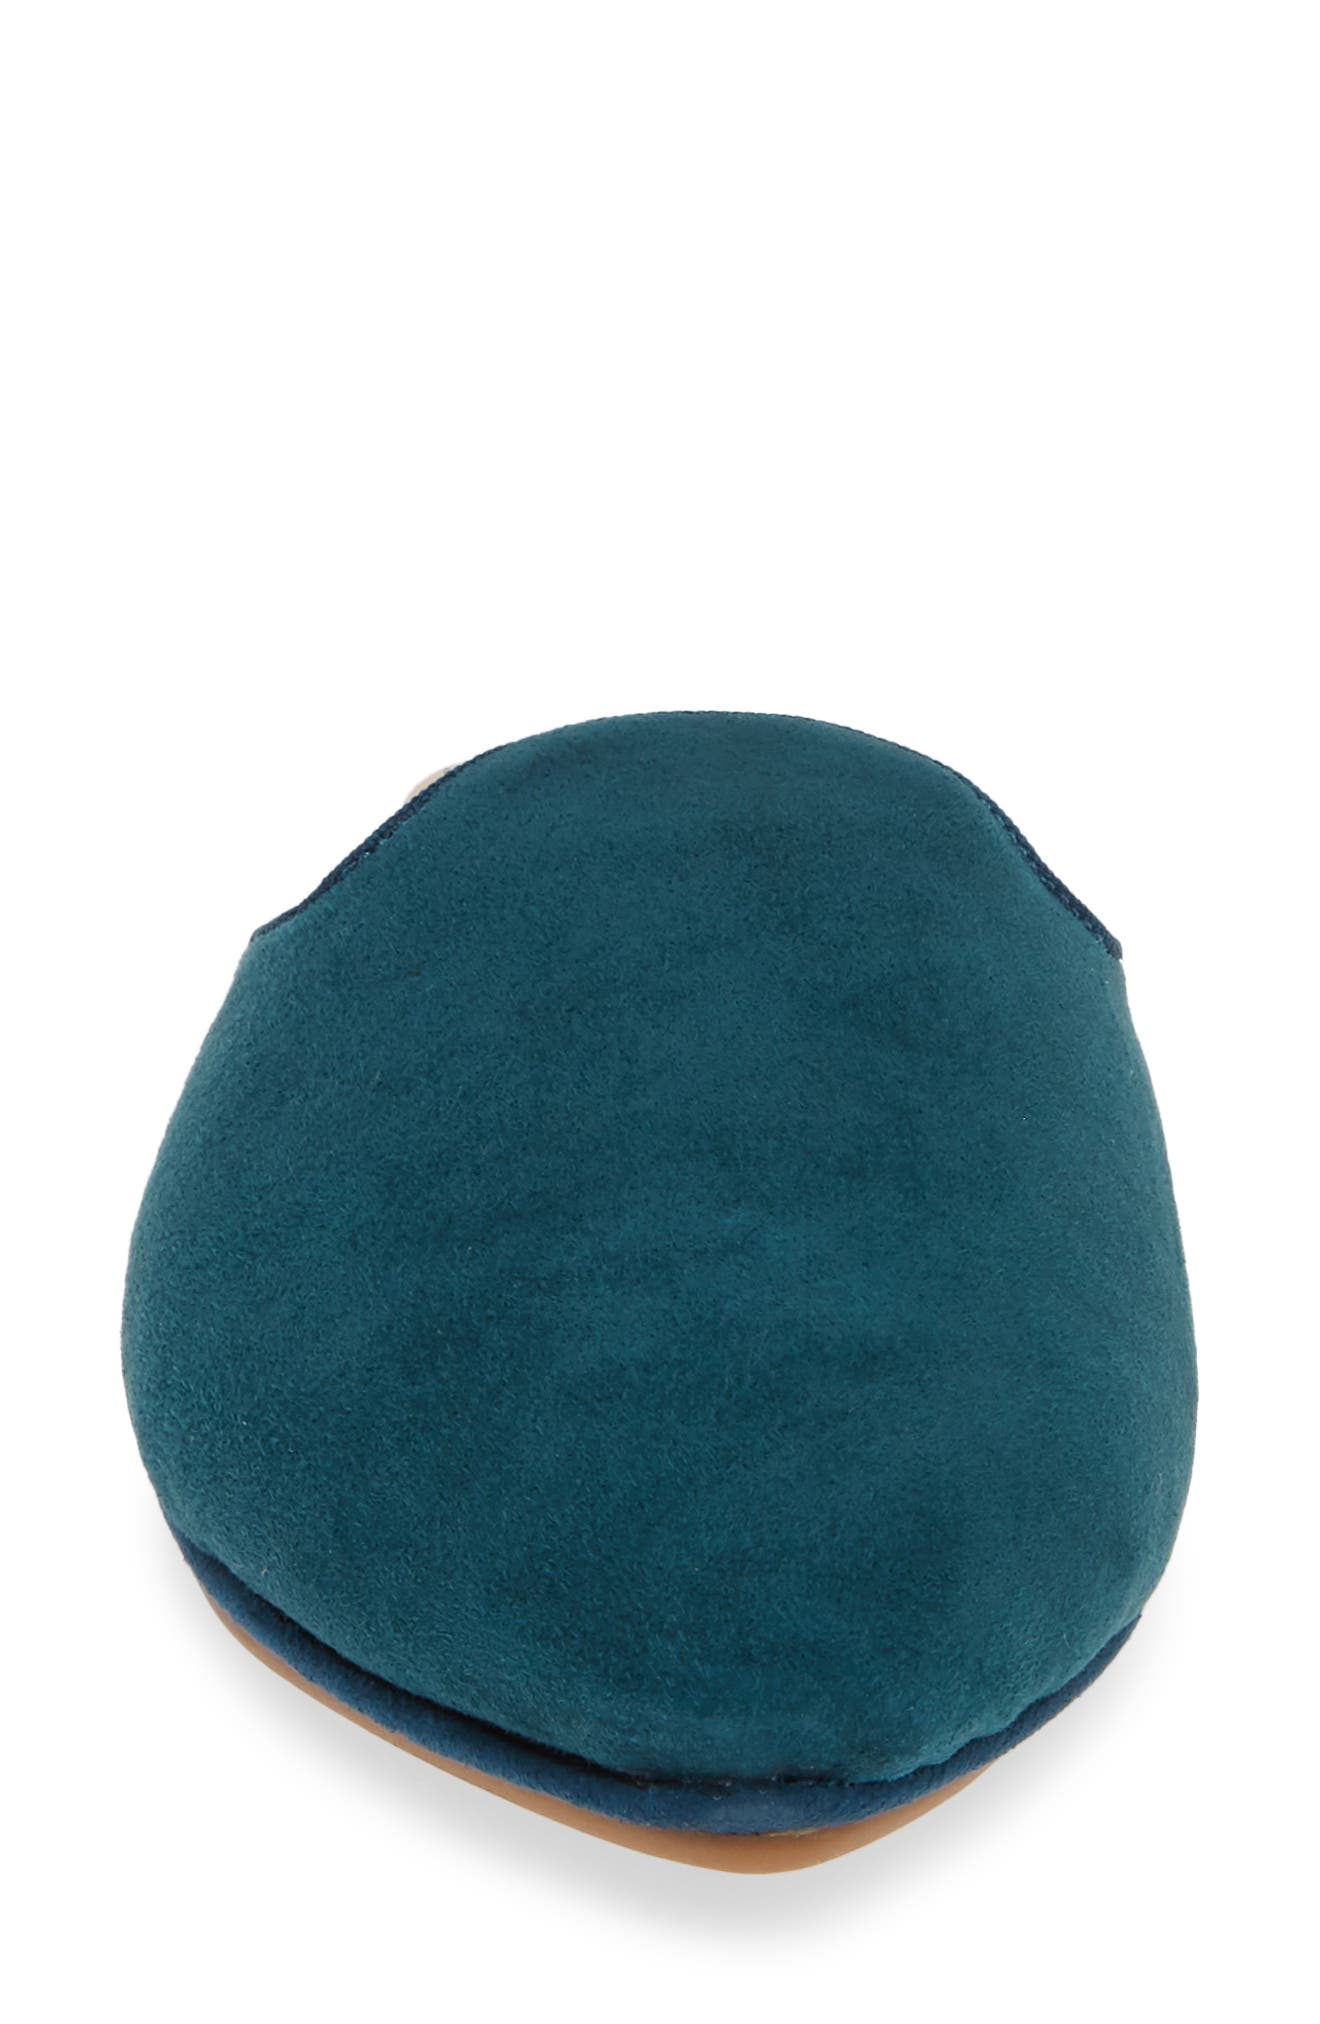 Vidi Mule,                             Alternate thumbnail 6, color,                             Teal Suede